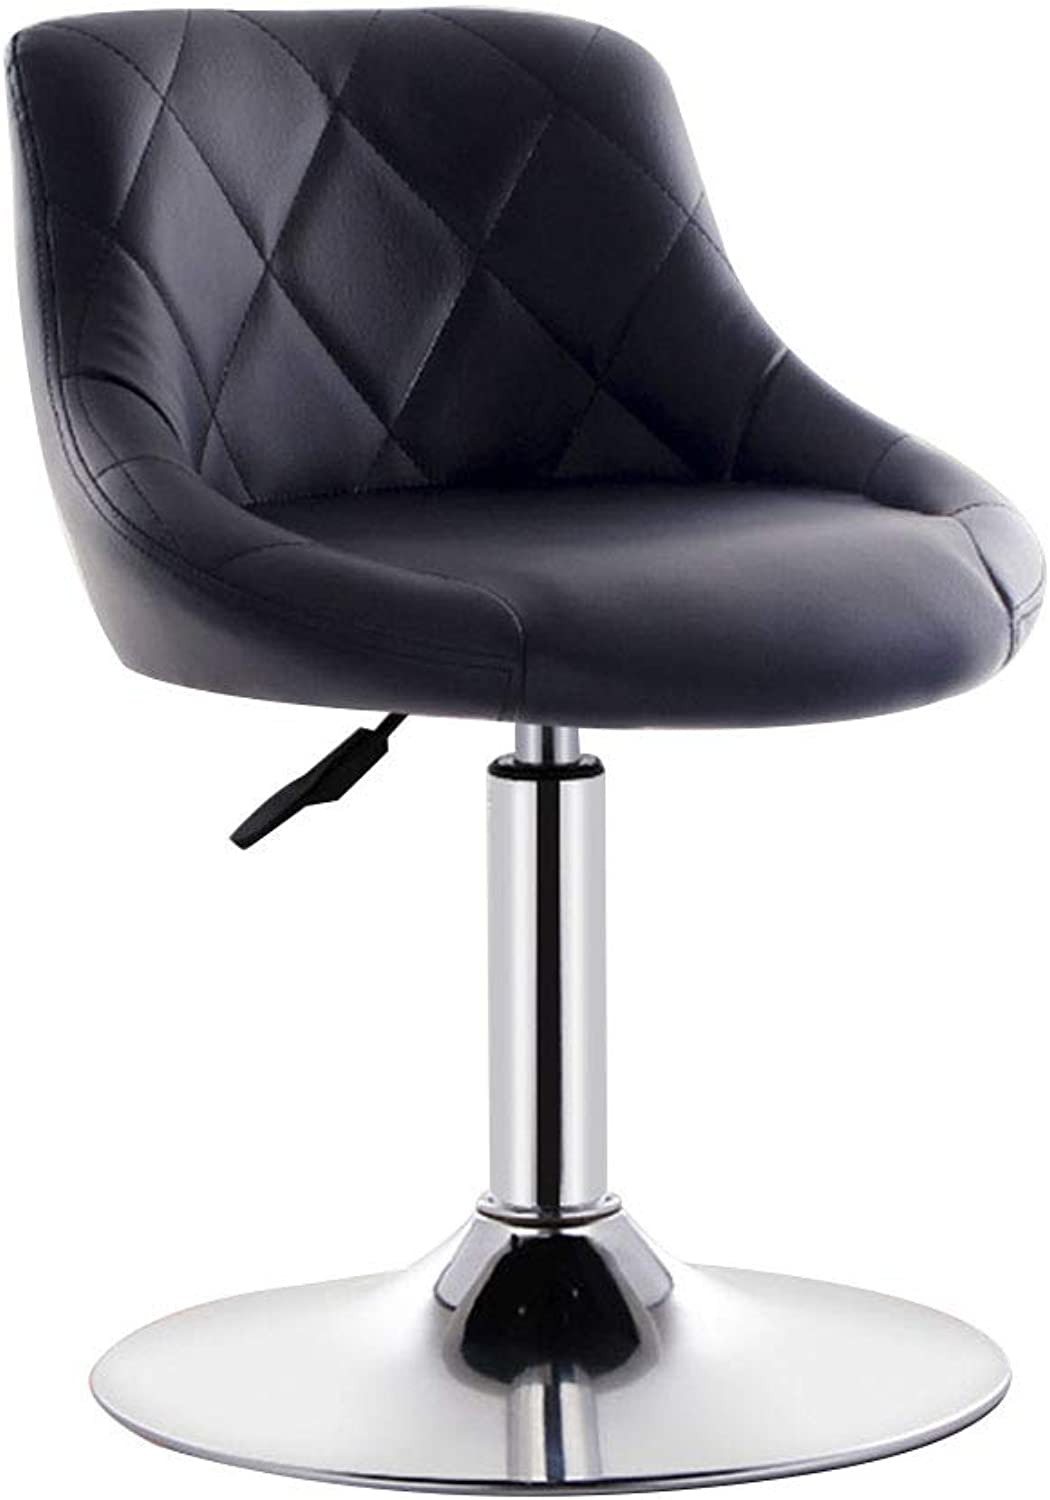 Bseack Swivel Chair Chair, Raise The Backrest Chassis Widening Lifting Swivel Chair Fit The Body Curve Leisure bar Chair Multiple Colour (color   A)